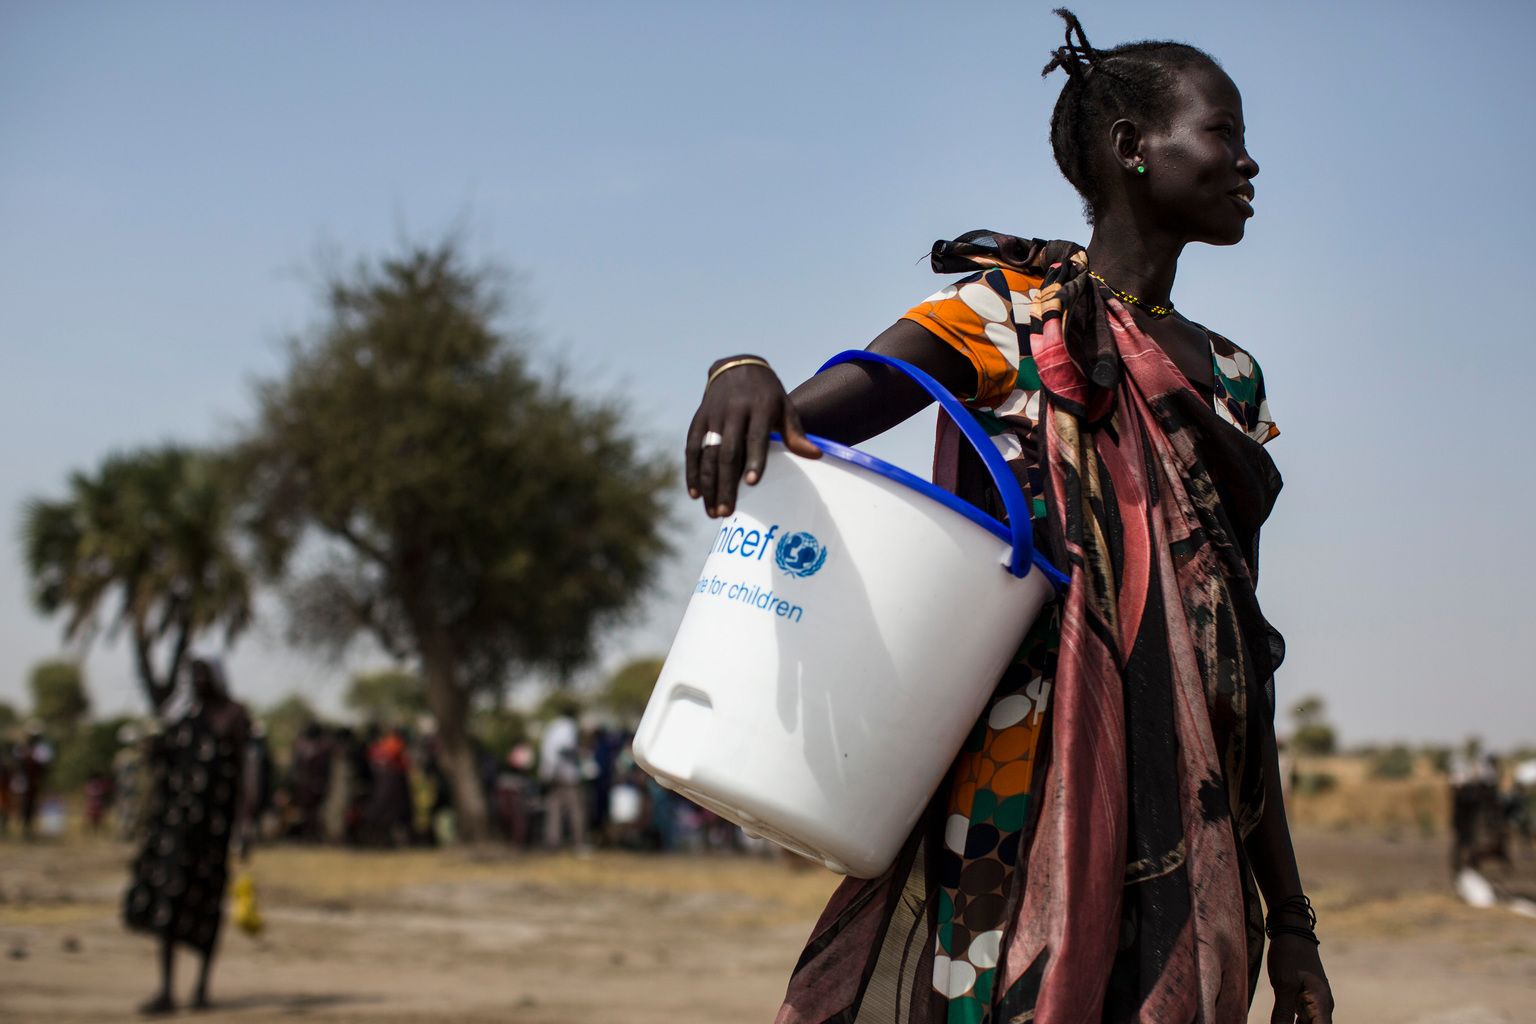 A woman holds a UNICEF donated bucket during a Rapid Response Mission (RRM) in the village of Rubkuai, Unity State, South Sudan, February 16, 2017. In 2017 in South Sudan, ongoing insecurity, combined with an economic crisis that has pushed inflation above 800 percent, has created widespread food insecurity with malnutrition among children having reached emergency levels in most parts of the country. In 2016, UNICEF and partners admitted 184,000 children for treatment of severe malnutrition. That is 50 percent higher than the number treated in 2015 and an increase of 135 percent over 2014. In February 2017, war and a collapsing economy have left some 100,000 people facing starvation in parts of South Sudan where famine was declared 20 February, three UN agencies warned. A further 1 million people are classified as being on the brink of famine. The Food and Agriculture Organization of the United Nations (FAO), the United Nations Children's Fund (UNICEF) and the World Food Programme (WFP) also warned that urgent action is needed to prevent more people from dying of hunger. If sustained and adequate assistance is delivered urgently, the hunger situation can be improved in the coming months and further suffering mitigated.  The total number of food insecure people is expected to rise to 5.5 million at the height of the lean season in July if nothing is done to curb the severity and spread of the food crisis. According to the Integrated Food Security Phase Classification (IPC) update released 20 February by the government, the three agencies and other humanitarian partners, 4.9 million people – more than 40 percent of South Sudan's population – are in need of urgent food, agriculture and nutrition assistance. Unimpeded humanitarian access to everyone facing famine, or at risk of famine, is urgently needed to reverse the escalating catastrophe, the UN agencies urged. Further spread of famine can only be prevented if humanitarian assistance is scaled up and